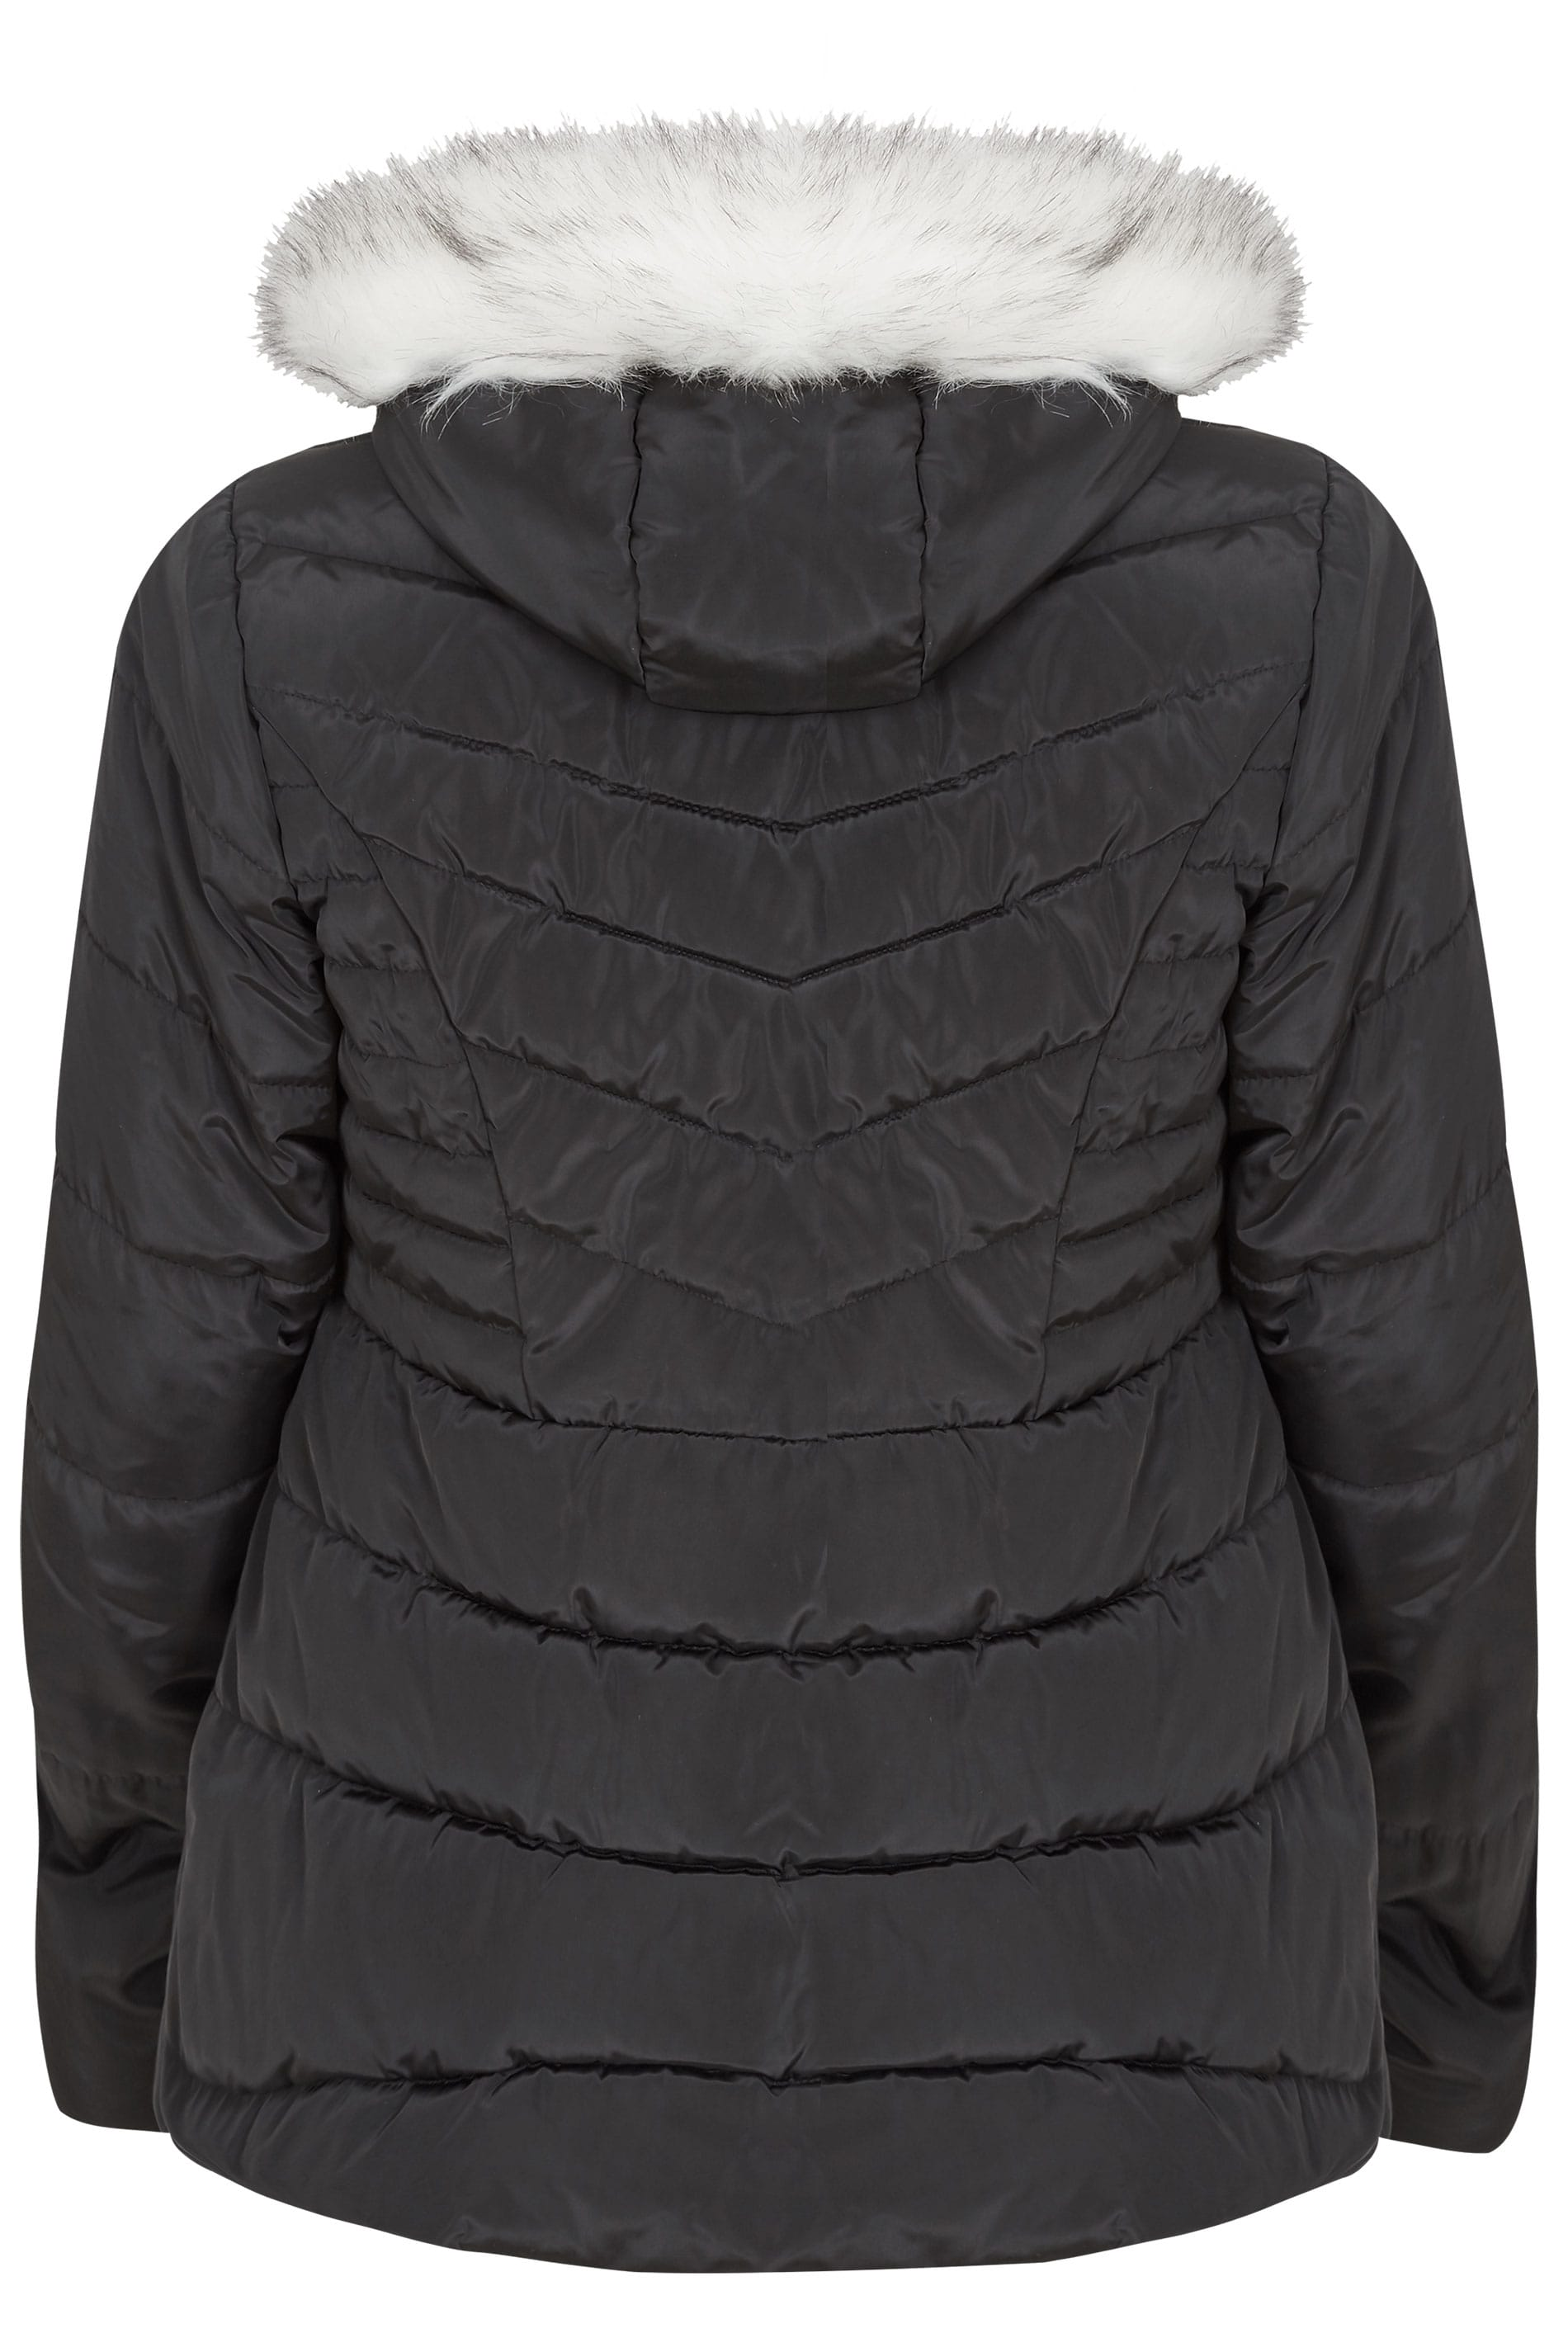 Black Puffa Coat With Faux Fur Trim Hood, Plus size 16 to 36